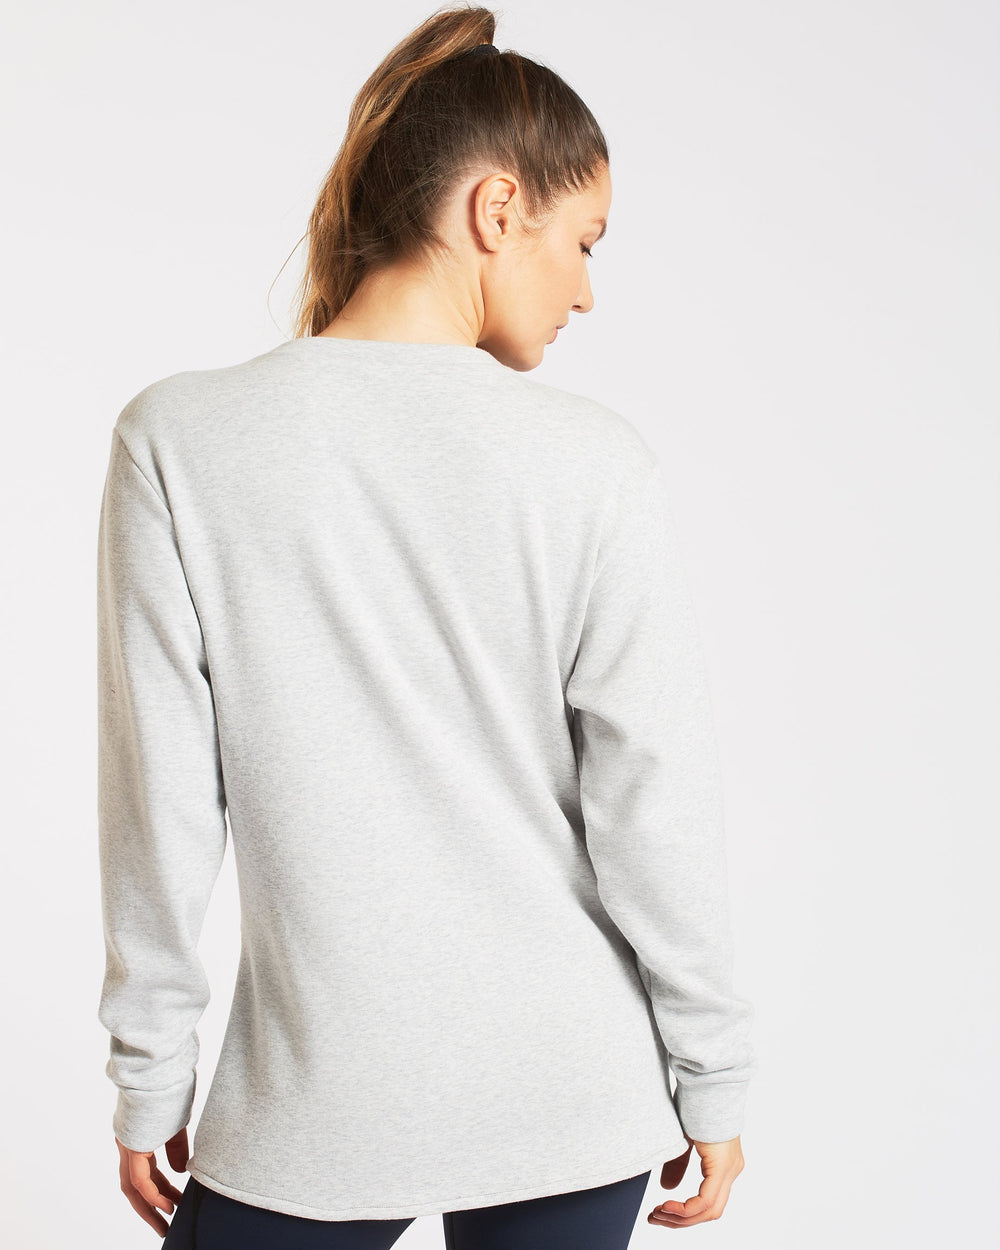 Farfalla Sweatshirt - Light Heather Grey